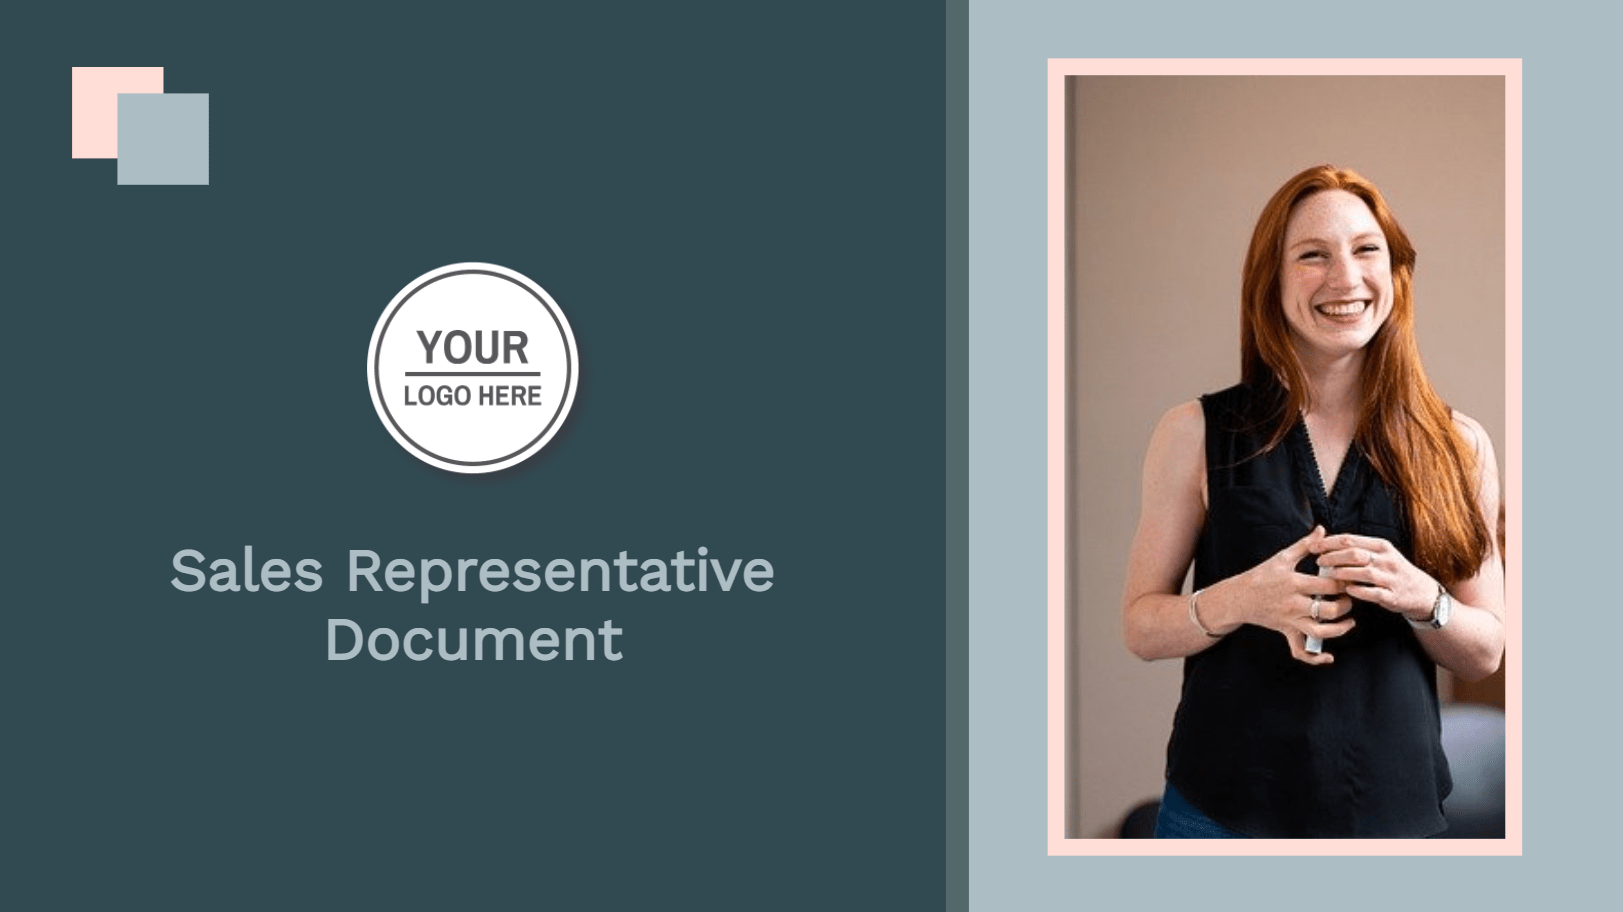 The sales representative document template is for salespeople or small business owners who want to give their clients a professional-looking and well-thought-out resume with an offer. This template is a good place to start if you want to send a professional-looking document to your clients. Use this template by clicking on it and begin editing right away. It should take no more than 15 minutes.